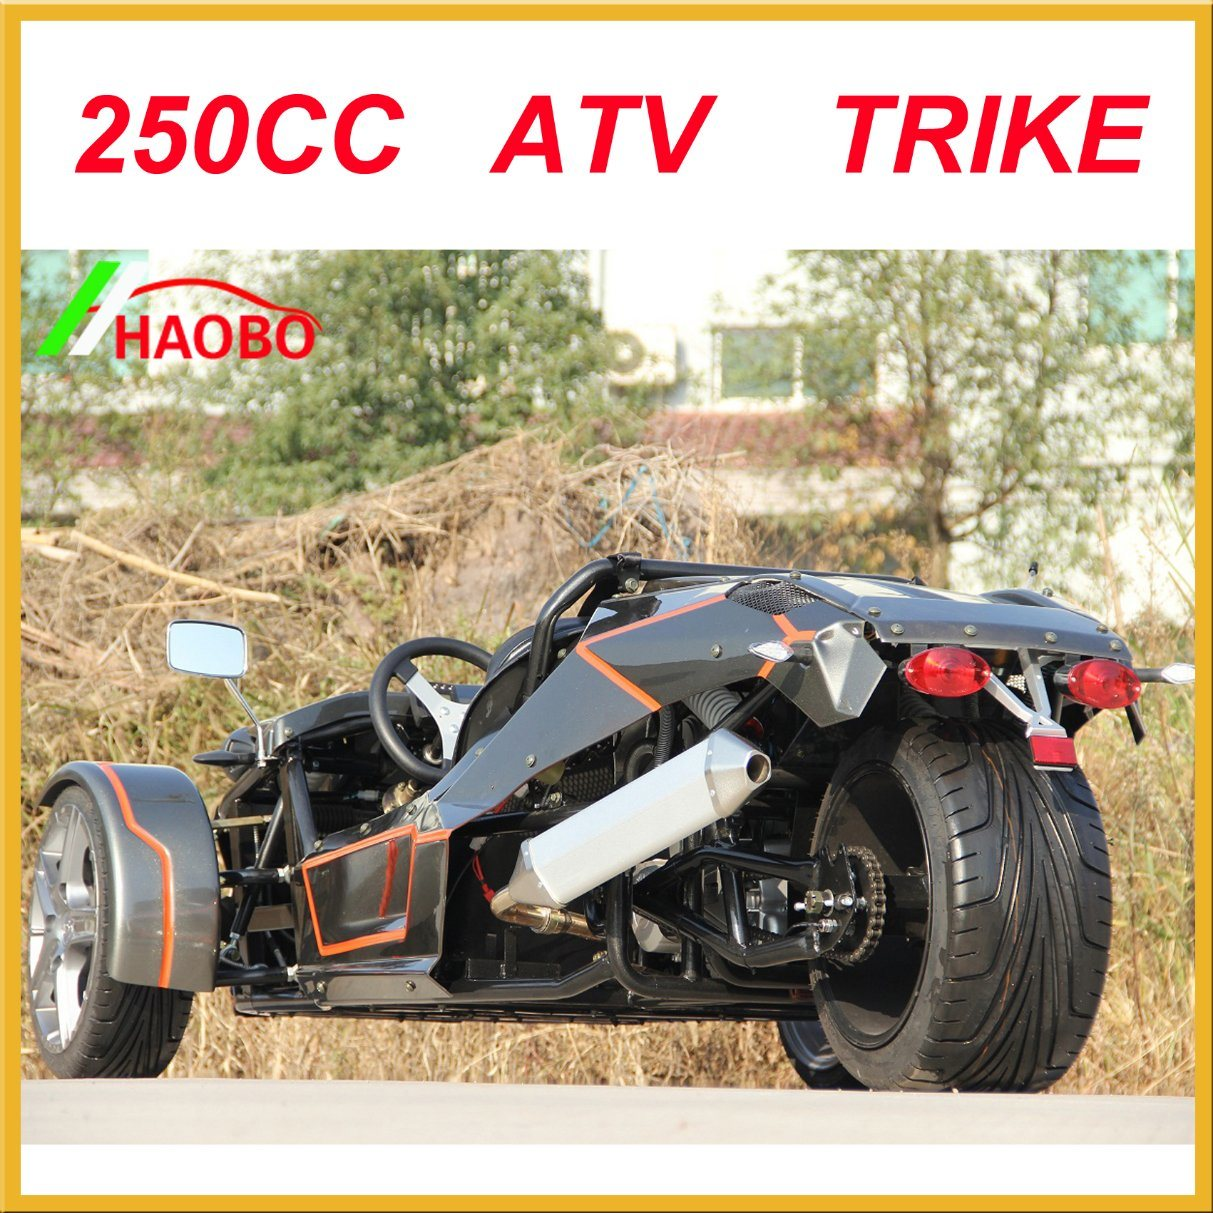 250cc Ztr Roadster with Ec Approved